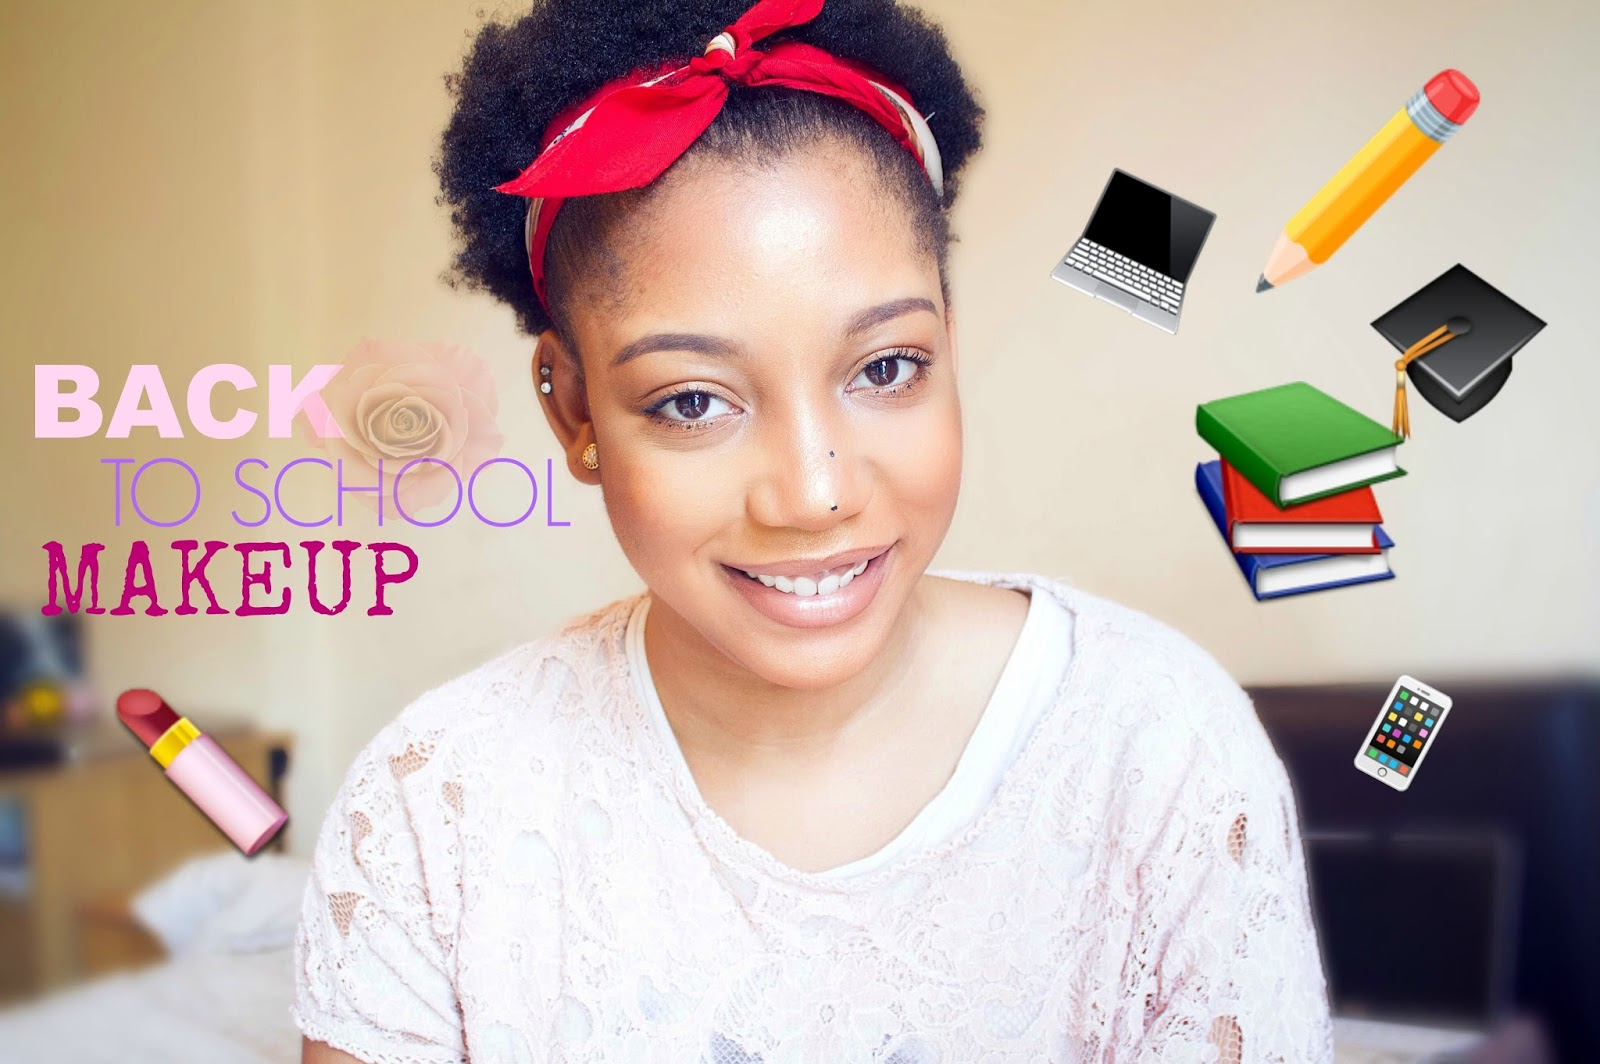 Natural back to school makeup glamorousregina hey beauties i created a back to school makeup tutorial on my channel its very simple and natural baditri Gallery